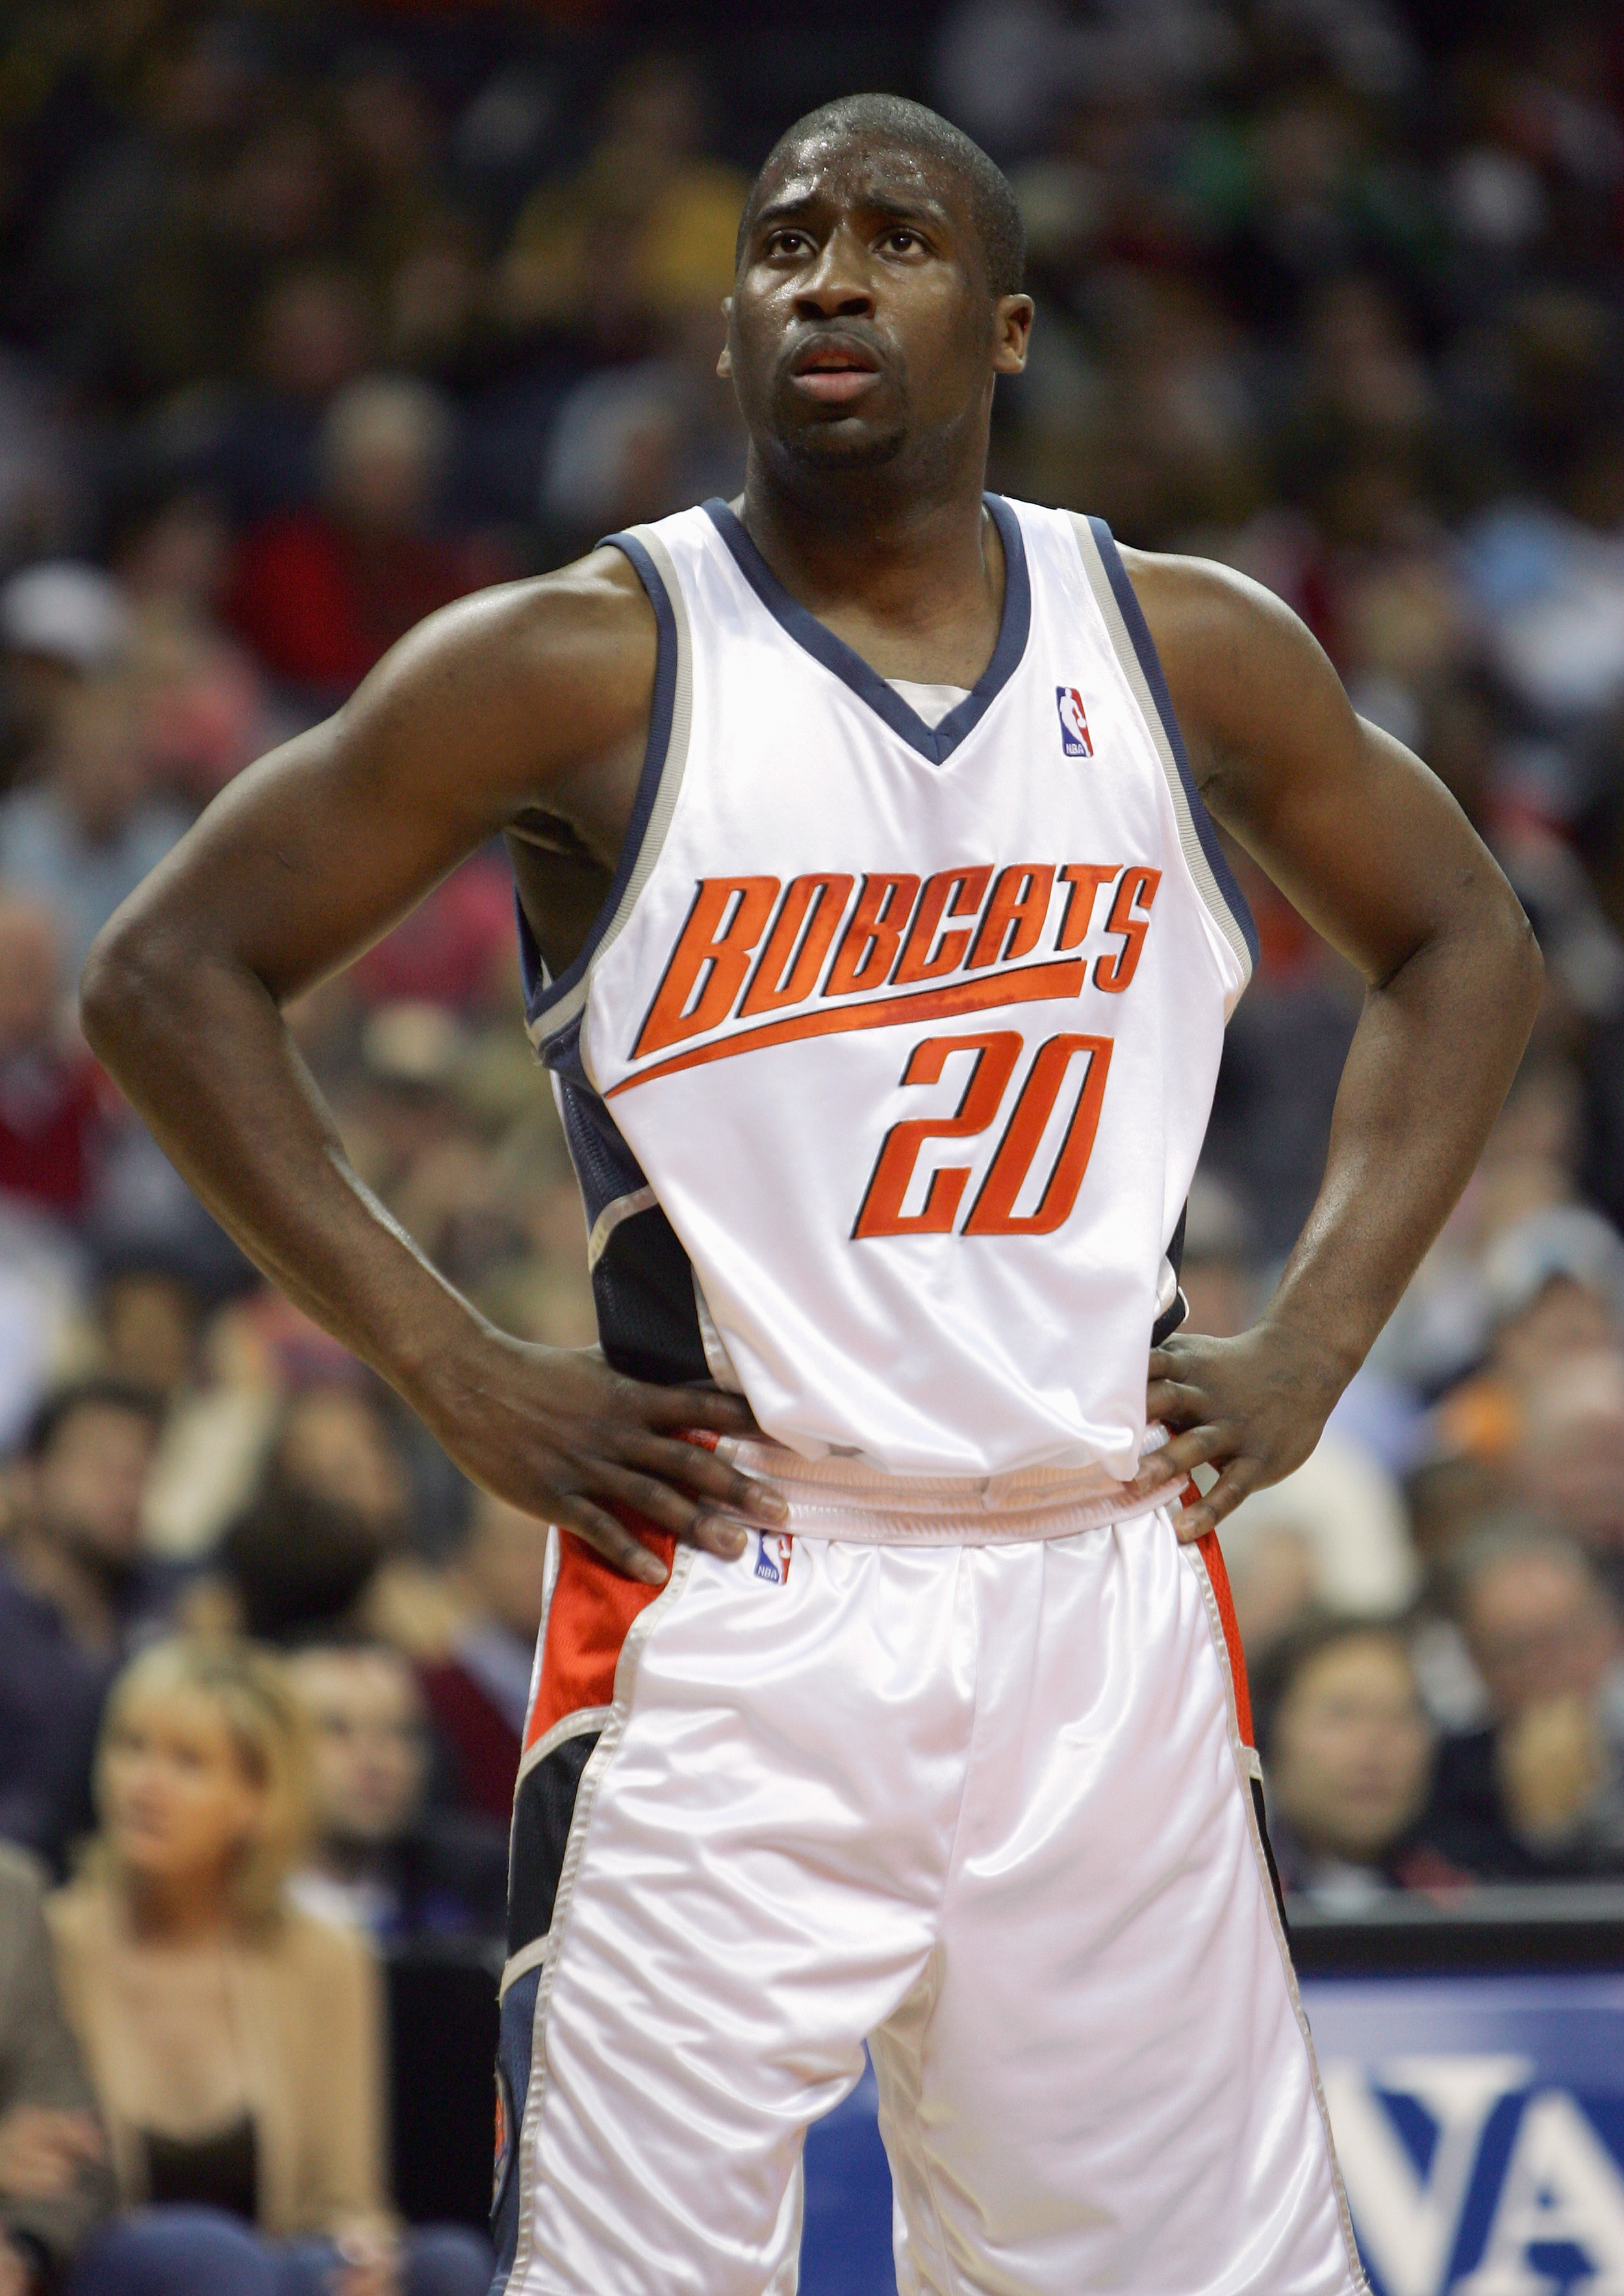 CHARLOTTE, NC - DECEMBER 23:  Raymond Felton #20 of the Charlotte Bobcats stands on the court during the game with the Los Angeles Clippers on December 23, 2005 at the Charlotte Bobcats Arena in Charlotte, North Carolina.  NOTE TO USER: User expressly ack